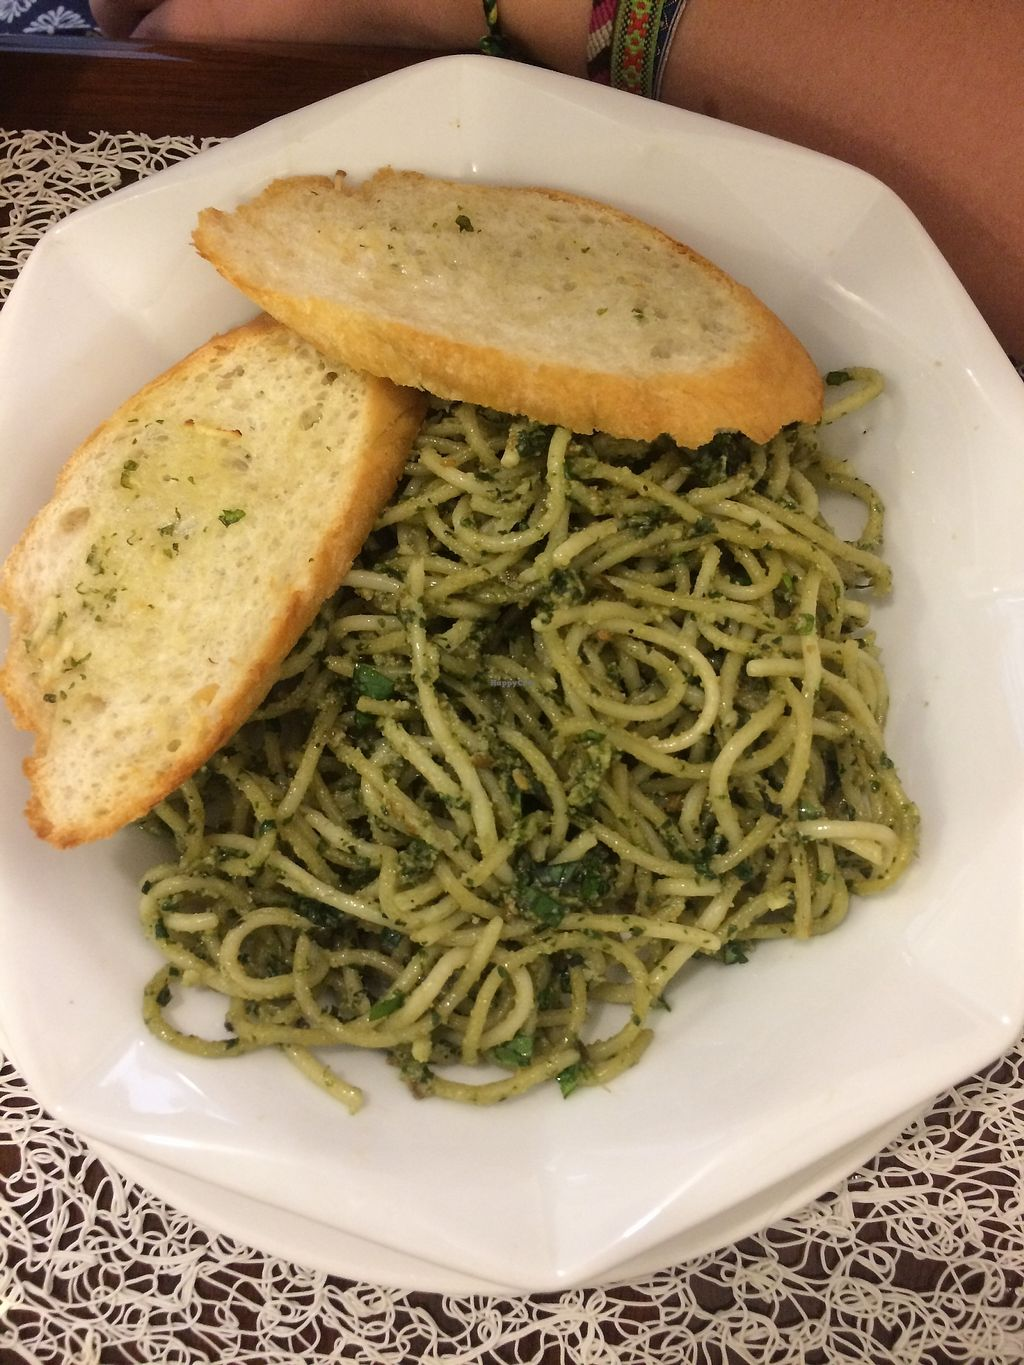 """Photo of Live Life Vegetarian Food  by <a href=""""/members/profile/Bethevegan"""">Bethevegan</a> <br/>Pesto pasta <br/> March 20, 2018  - <a href='/contact/abuse/image/41513/373333'>Report</a>"""